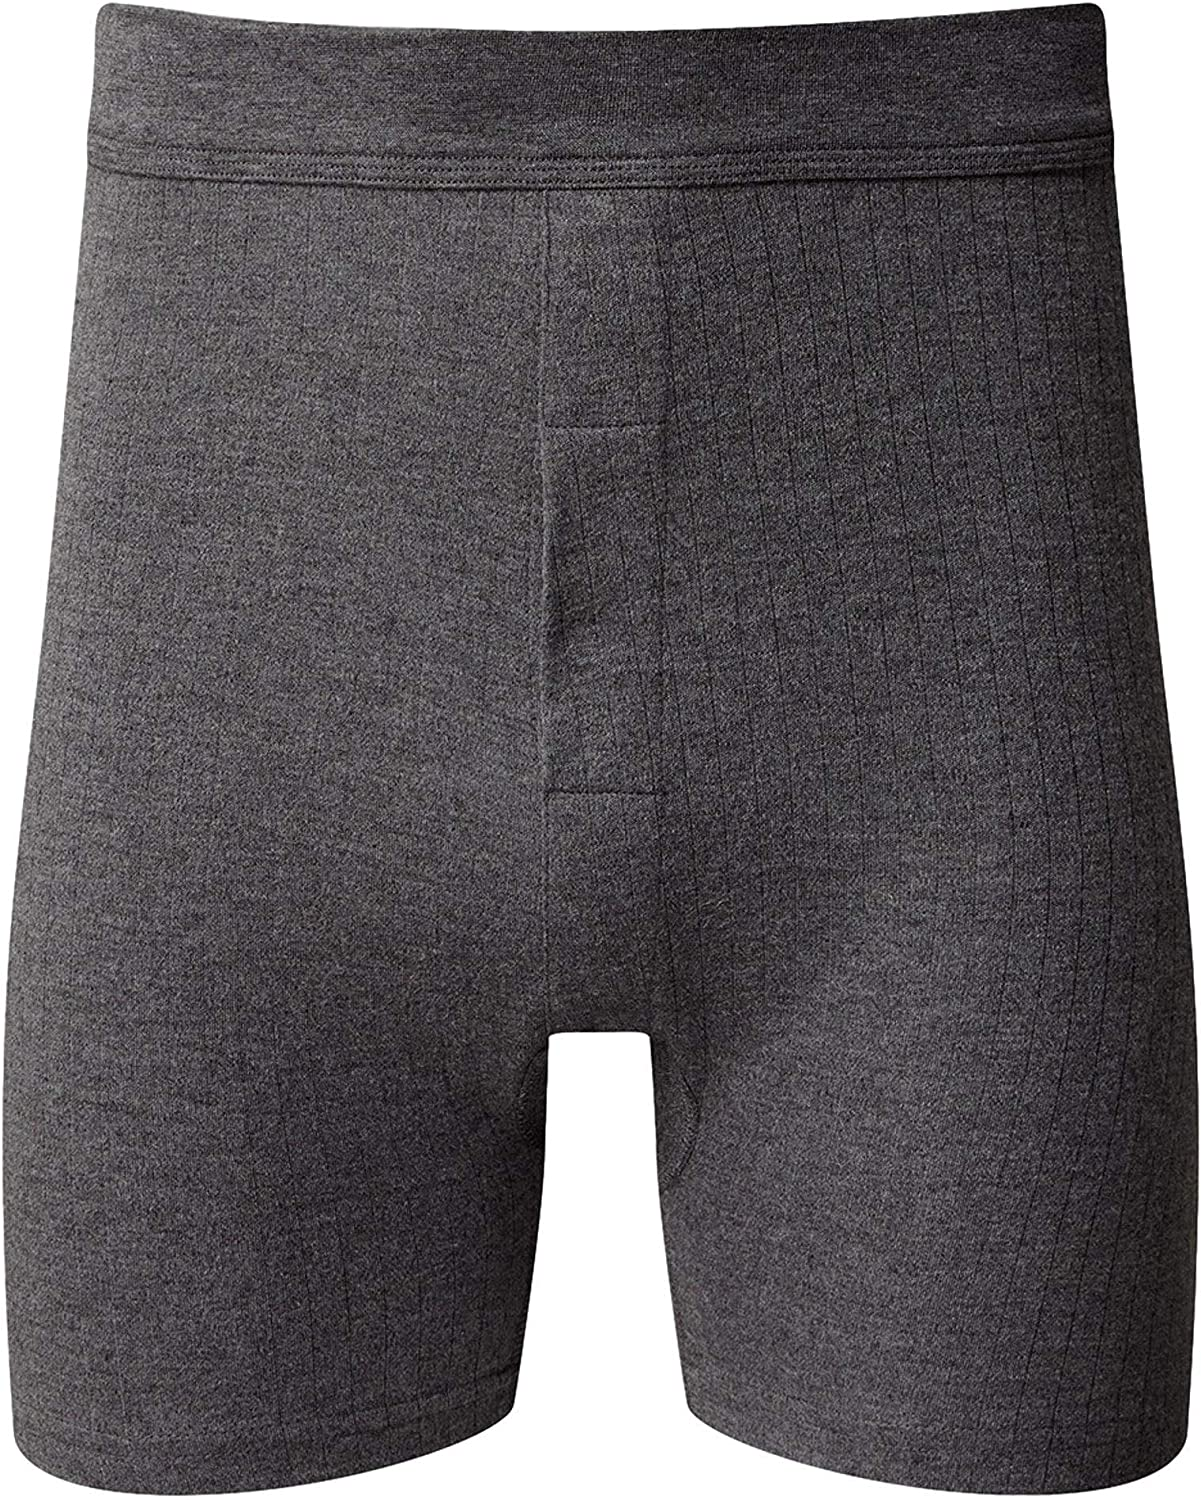 Charcoal Vedoneire Mens Thermal Trunks